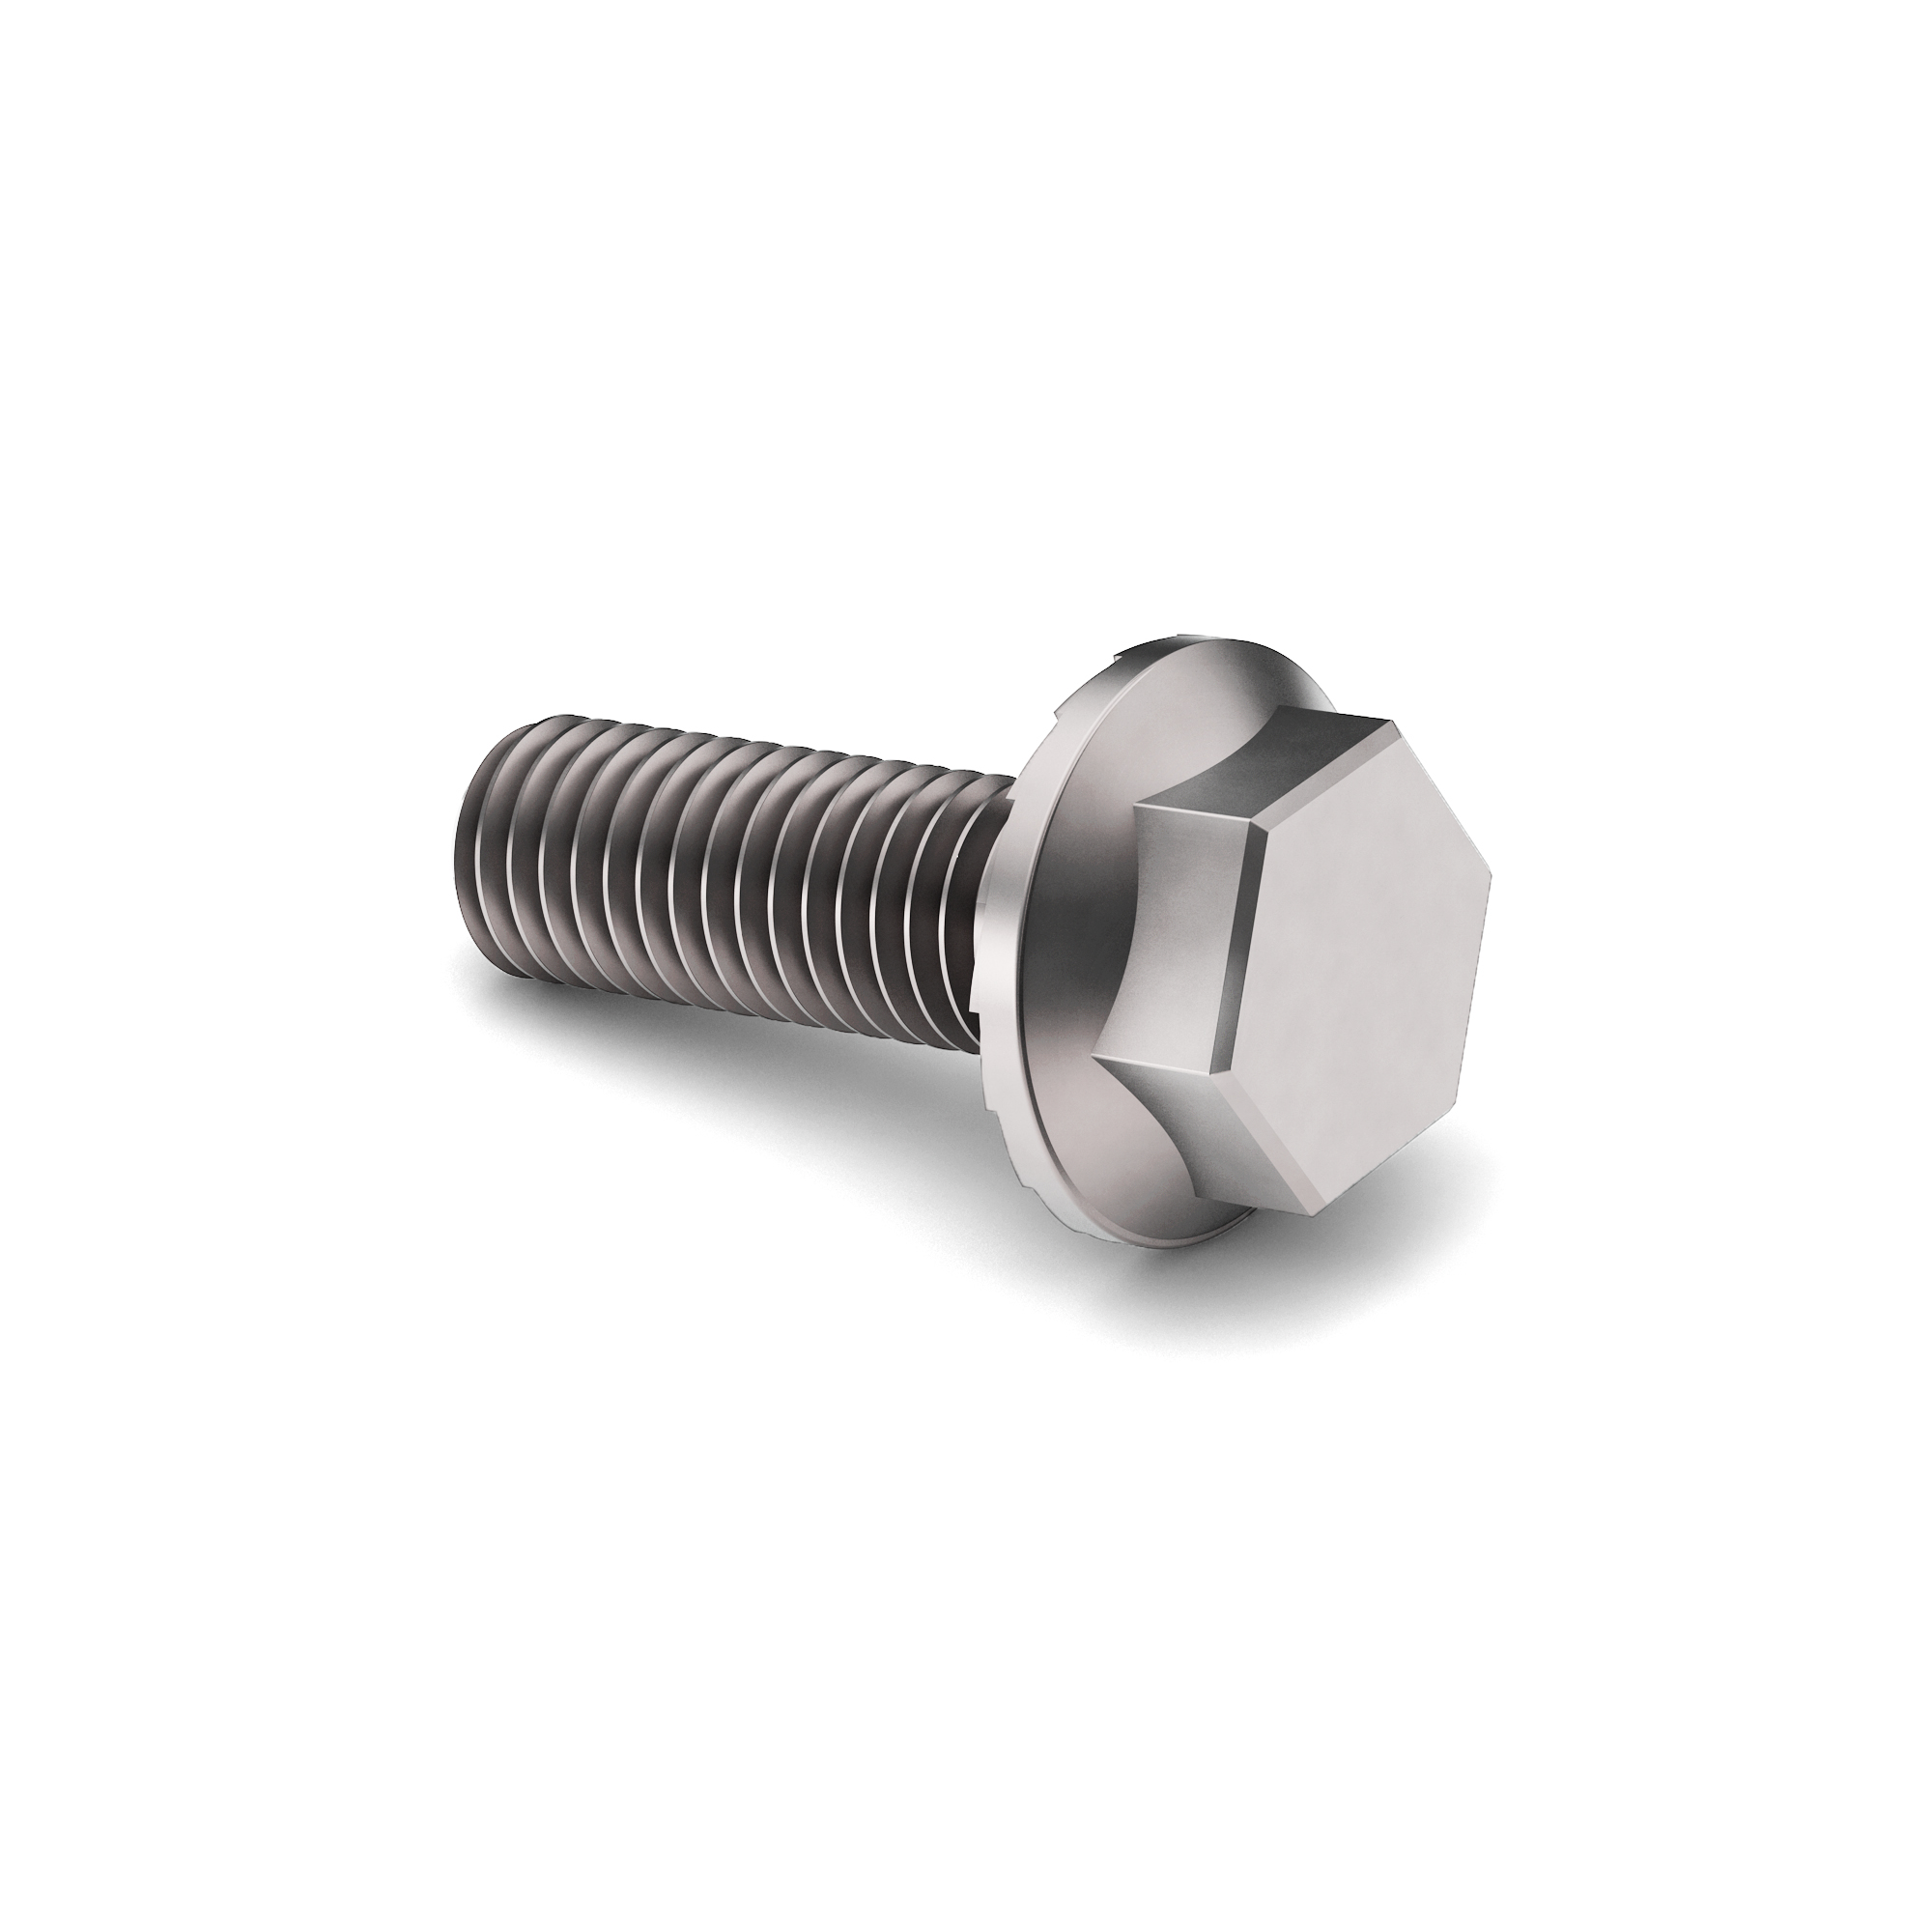 5/16-18x1 3/4 18/8 (A2) SS Hex Serrated Flange Locking Machine Screw Full Thrd Plain Finish (200 PER)